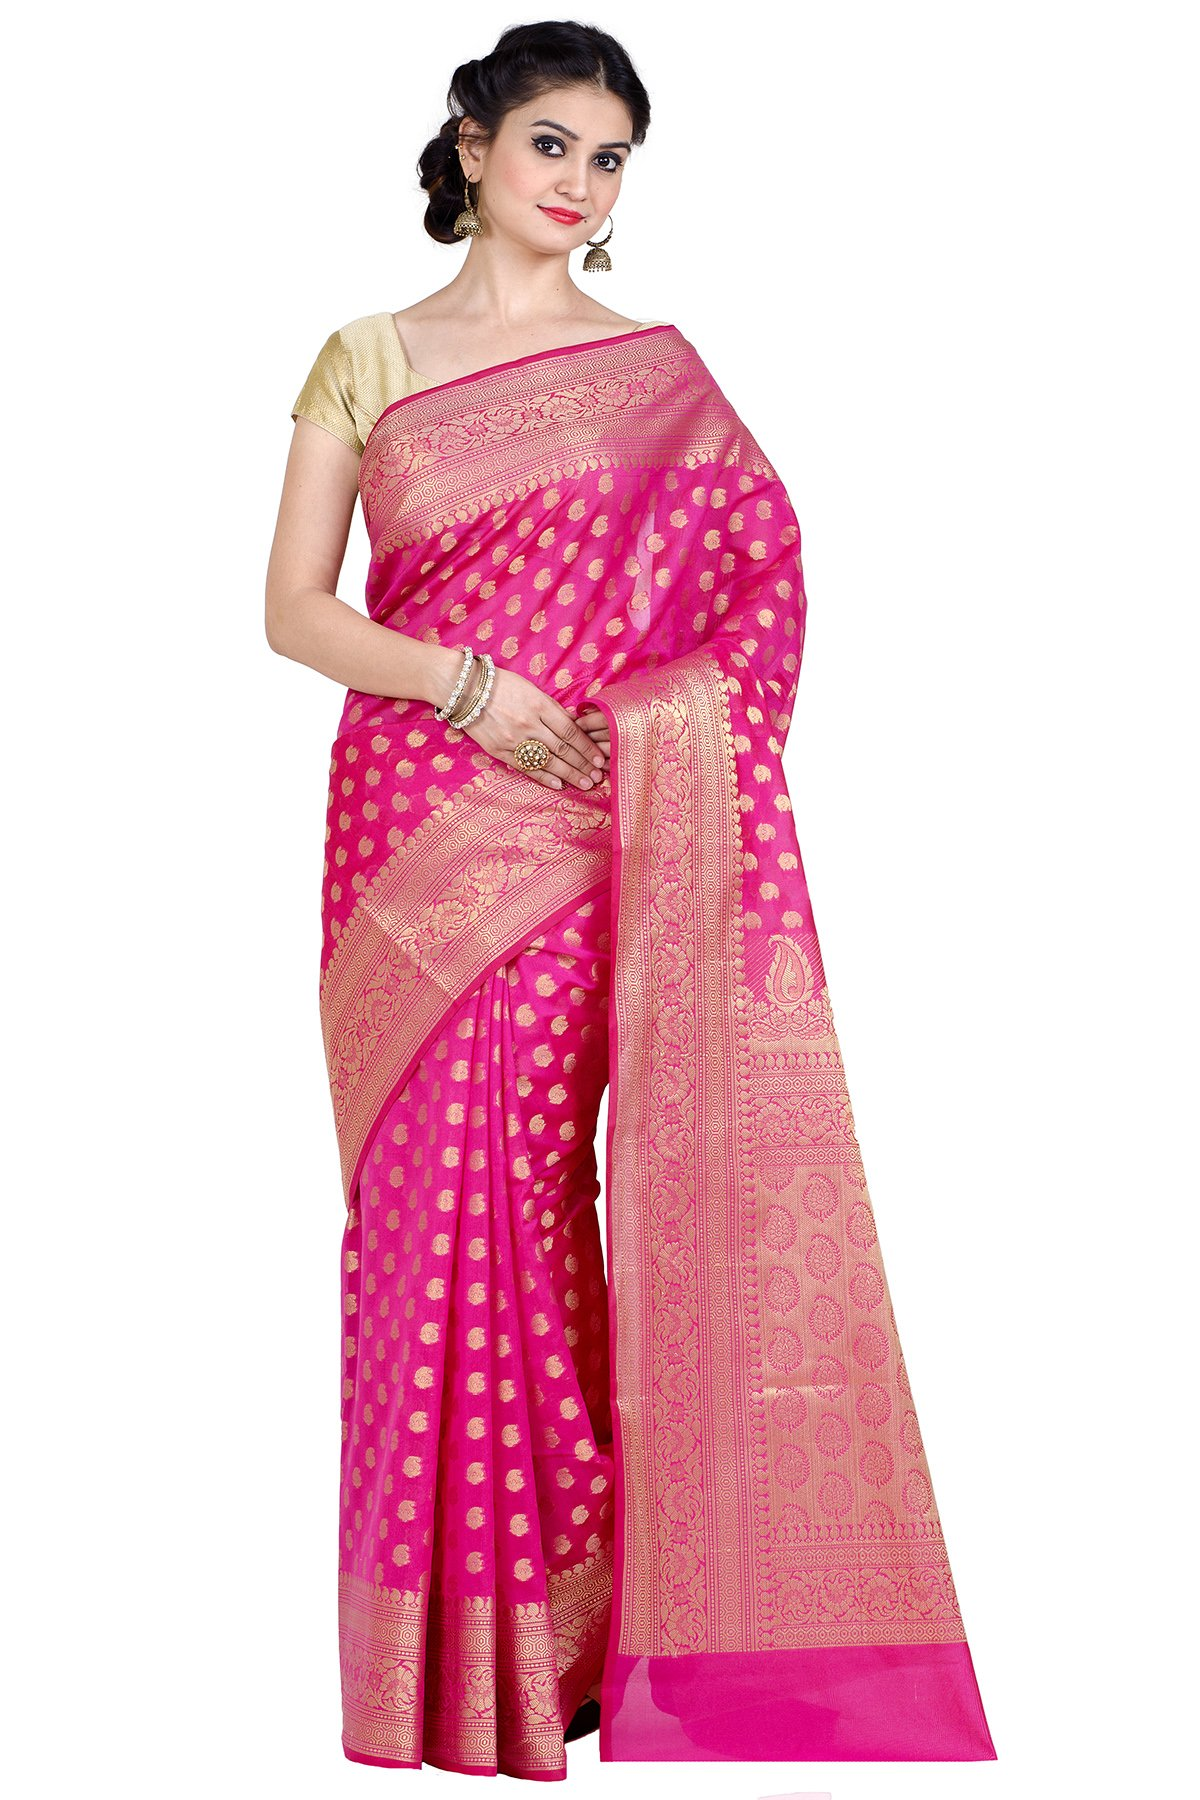 Chandrakala Women's Cotton Silk Banarasi Saree Free Size Pink